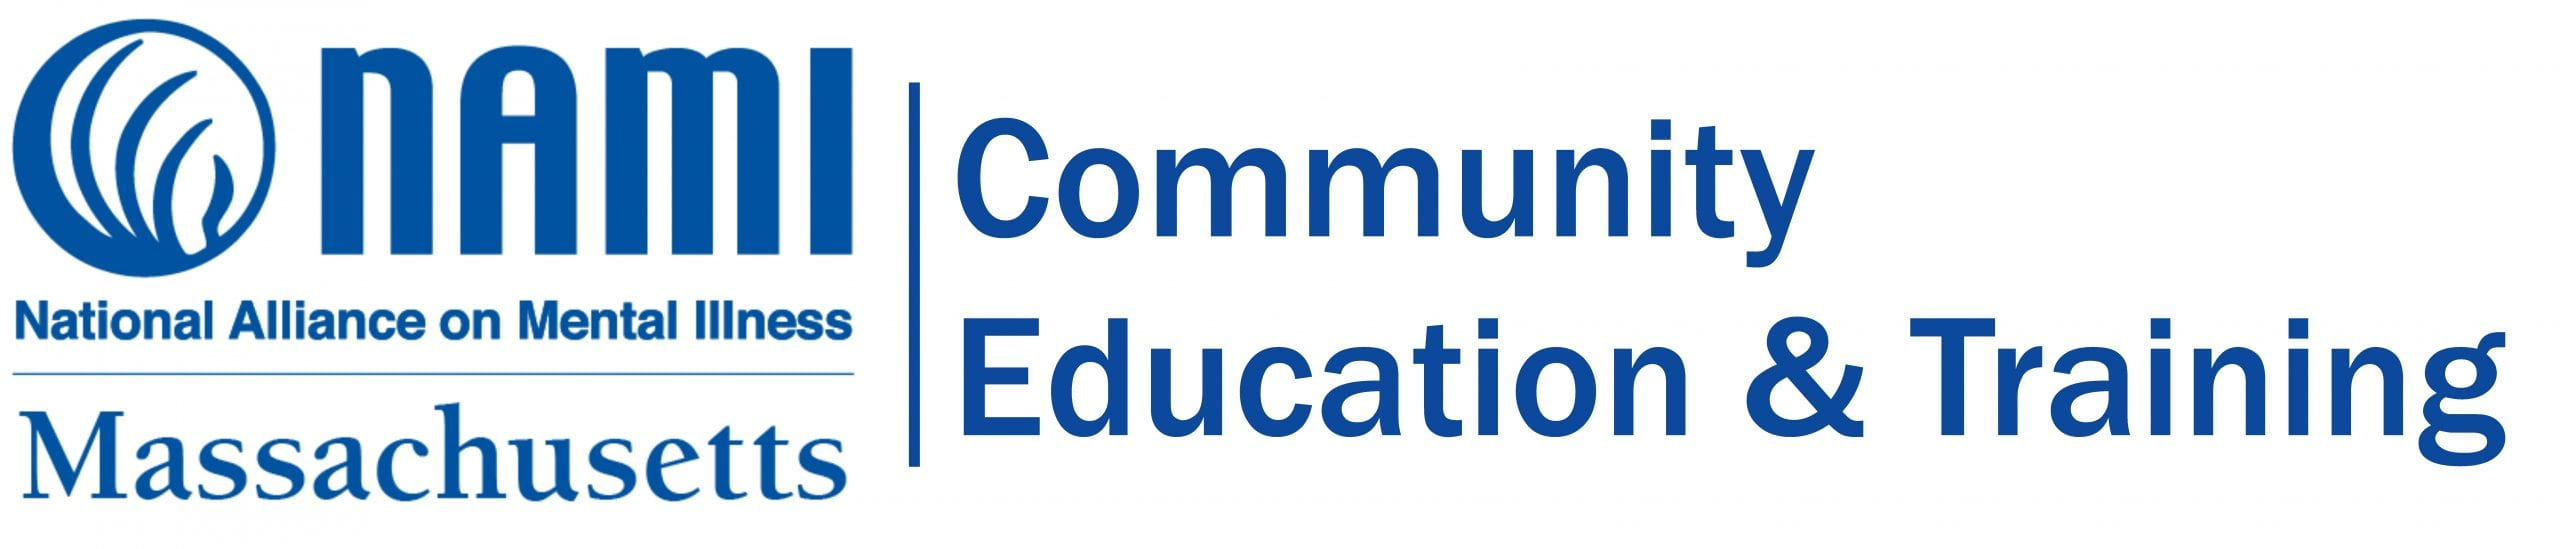 NMAI Mass Community Education & Training logo